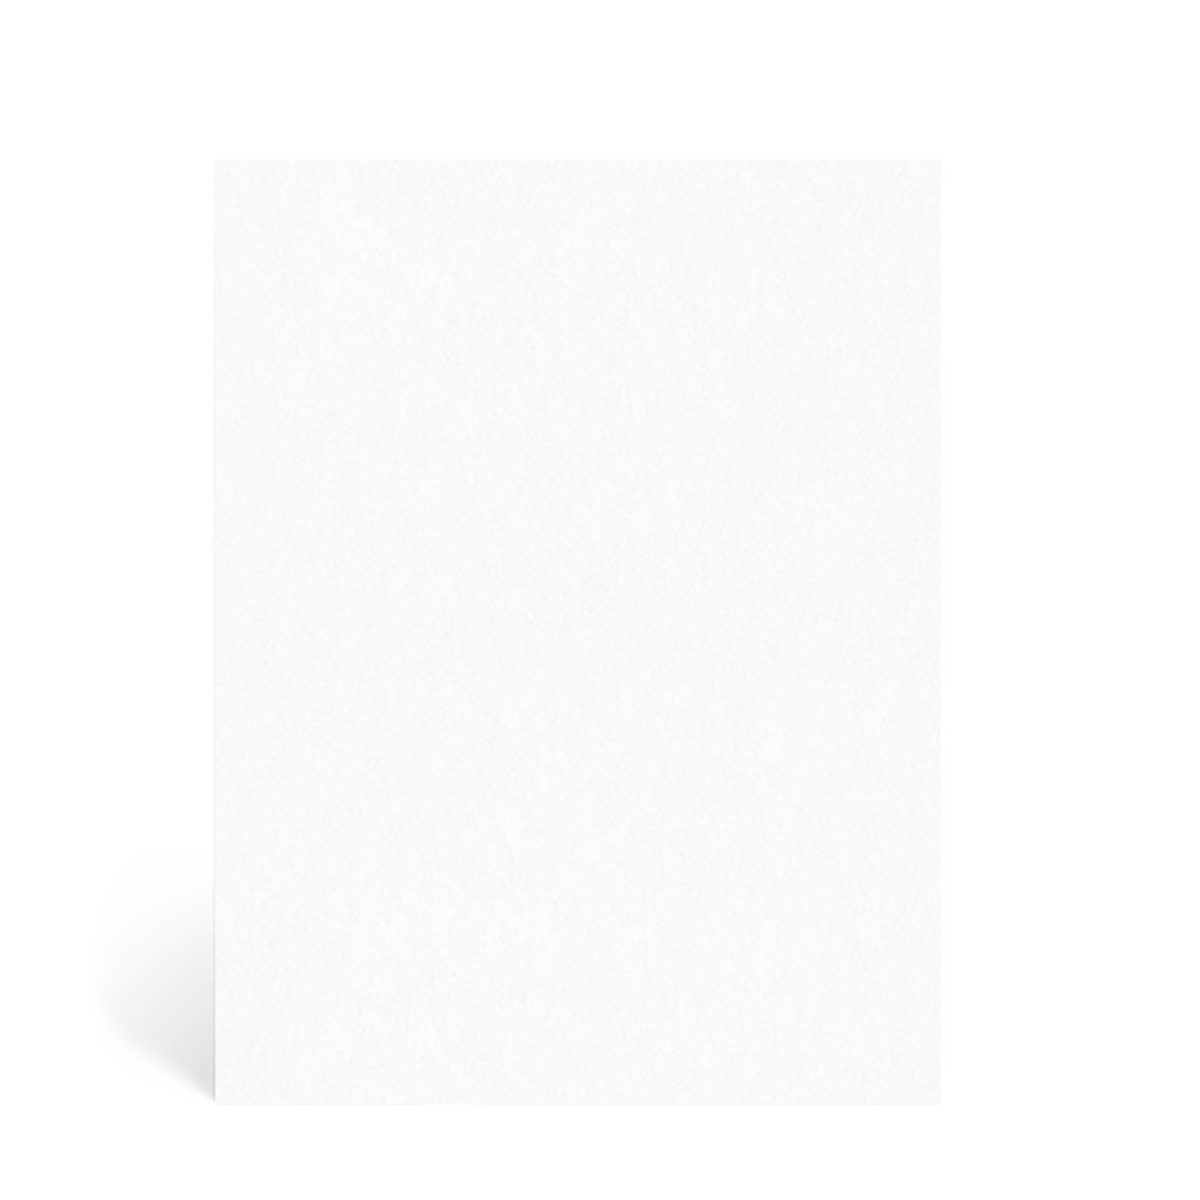 Https%3a%2f%2fwww.papier.com%2fproduct image%2f60353%2f31%2fthe minimalist 14441 rueckseite 1545923466.png?ixlib=rb 1.1